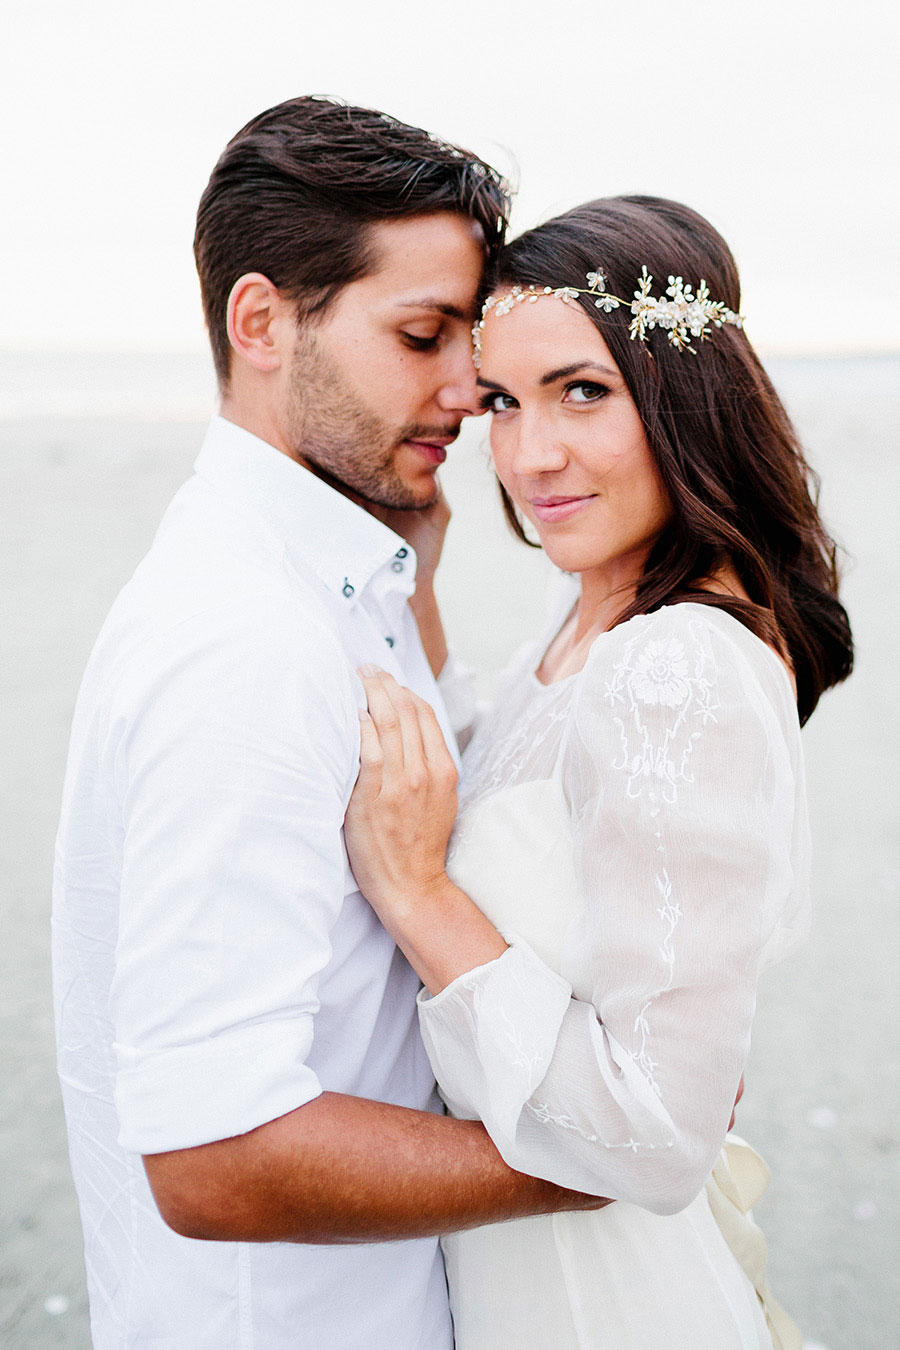 Down By The Sea! A Free-Spirited Elopement Editorial Shoot0066